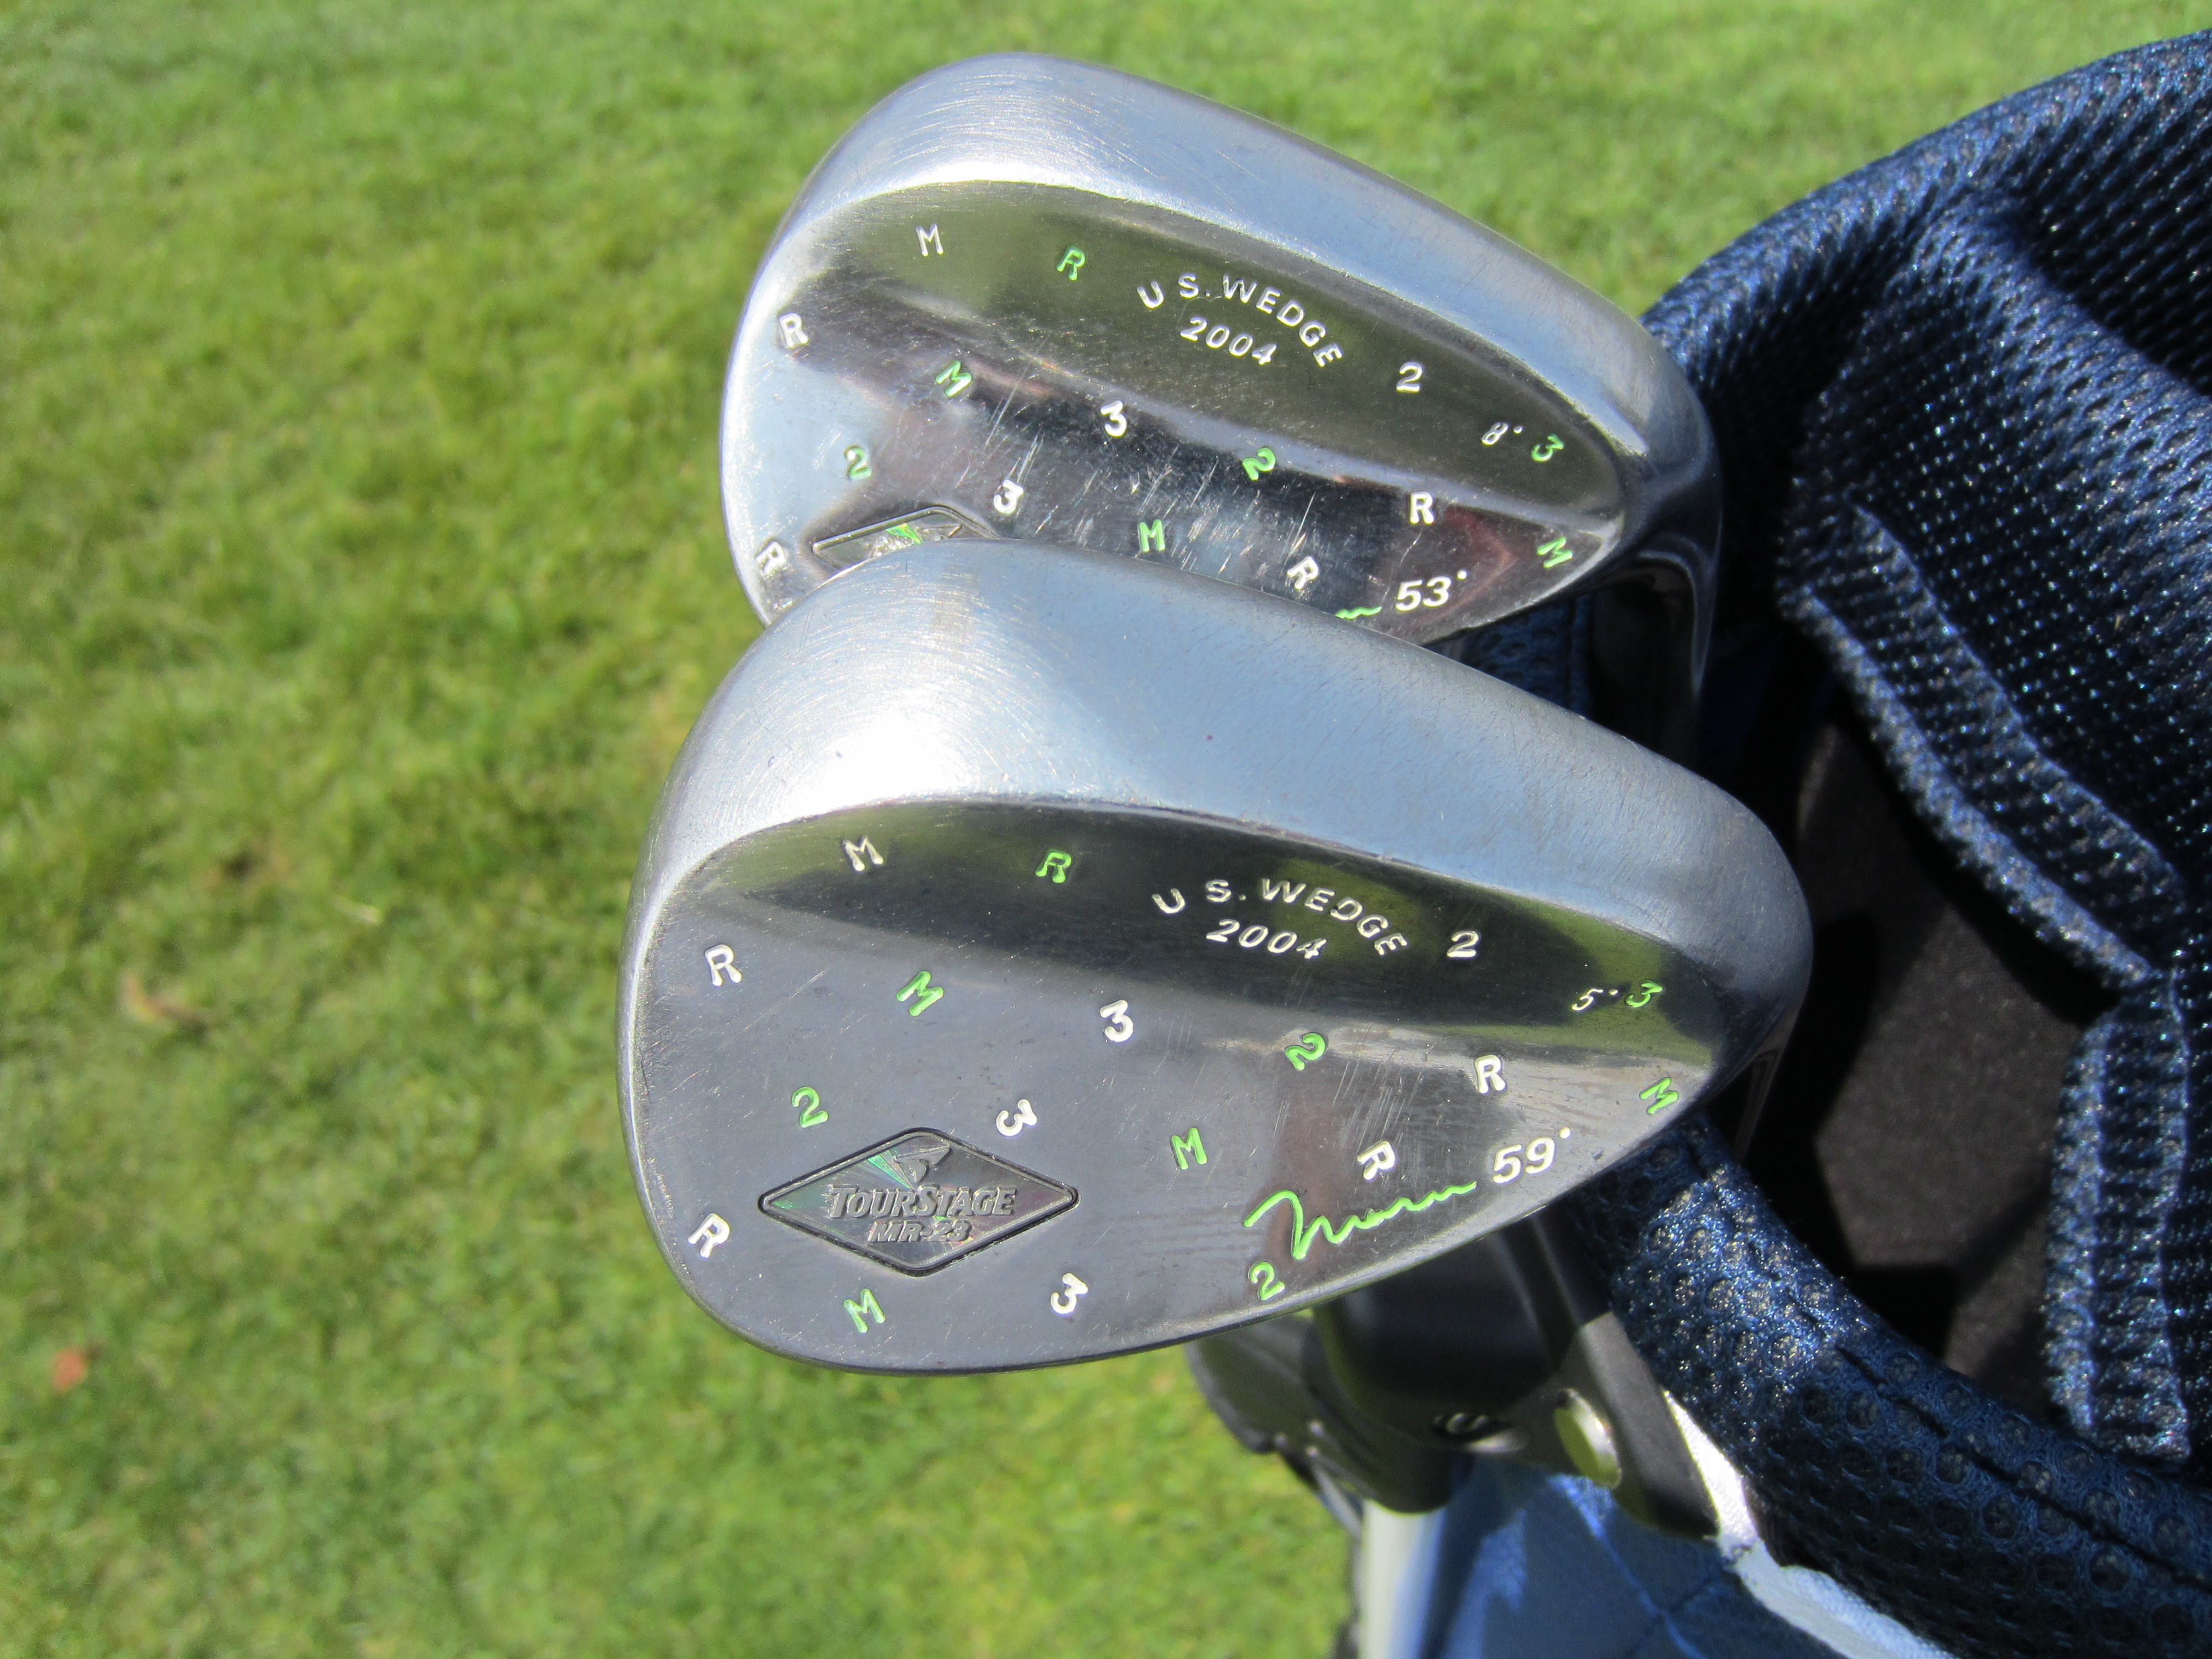 Japanese Forged Wedges Initial Look Motgolf Blog Spinner Iron Hiro Maru Back Shot